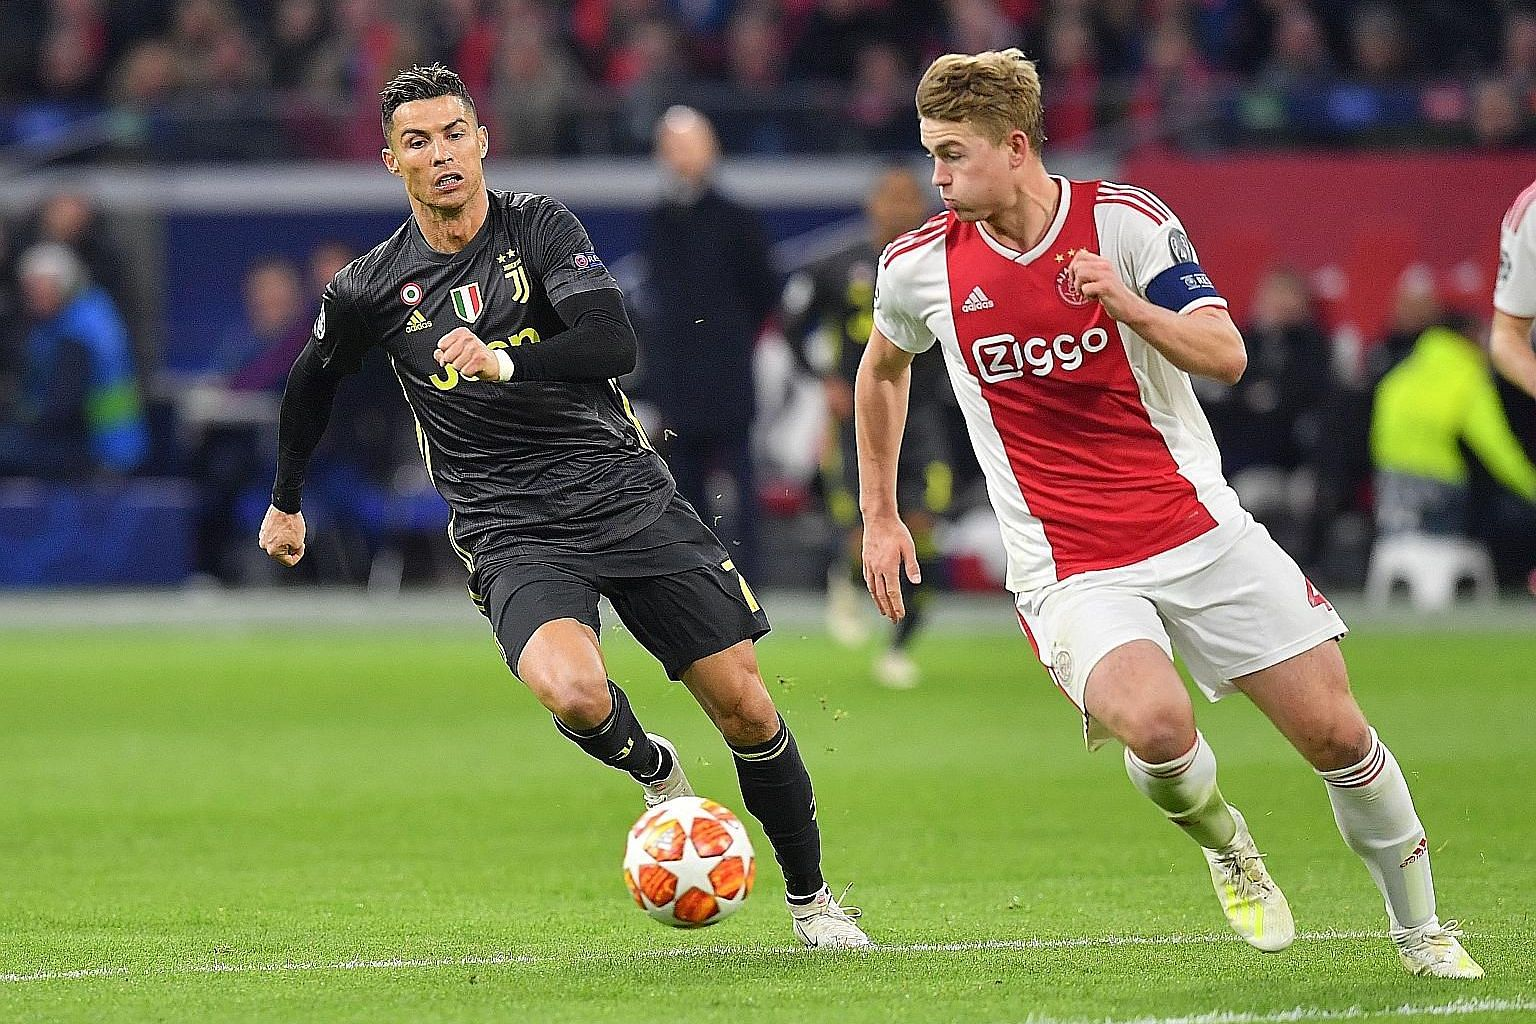 Juventus' Cristiano Ronaldo, seen chasing Ajax's Matthijs de Ligt during their Champions League quarter-final tie in April, can look forward to lining up alongside the Dutch defender in Italy next season. De Ligt is poised to sign for the Italian cha